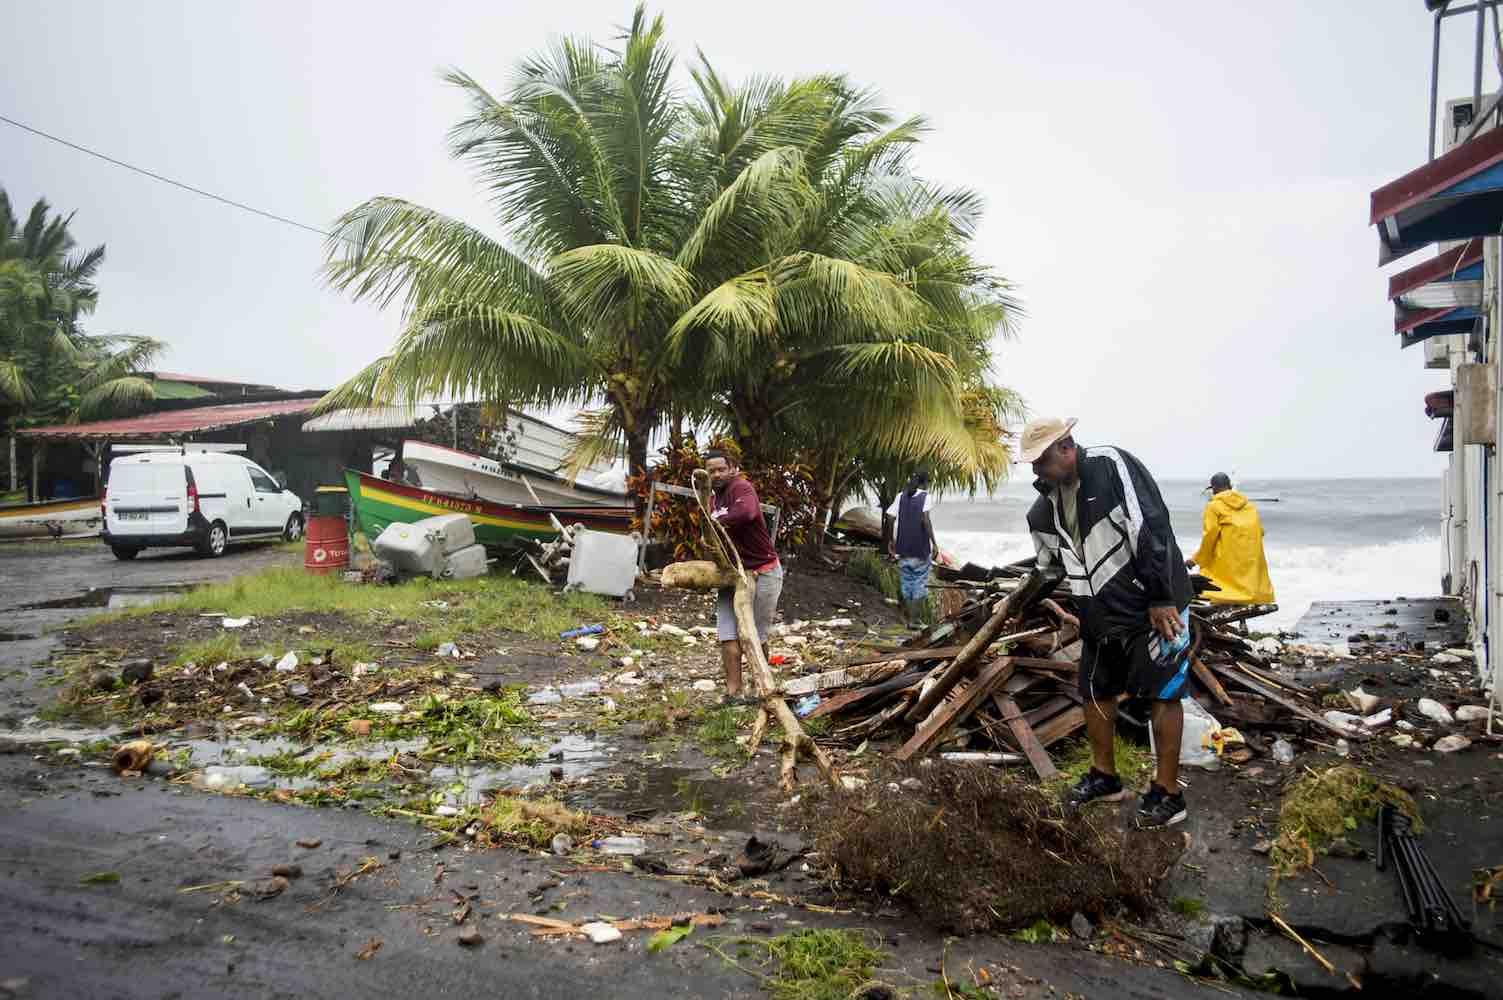 "<div class=""meta image-caption""><div class=""origin-logo origin-image ktrk""><span>ktrk</span></div><span class=""caption-text"">People clear debris in Saint-Pierre, on the French Caribbean island of Martinique, after it was hit by Hurricane Maria, on September 19, 2017. (LIONEL CHAMOISEAU/AFP/Getty)</span></div>"